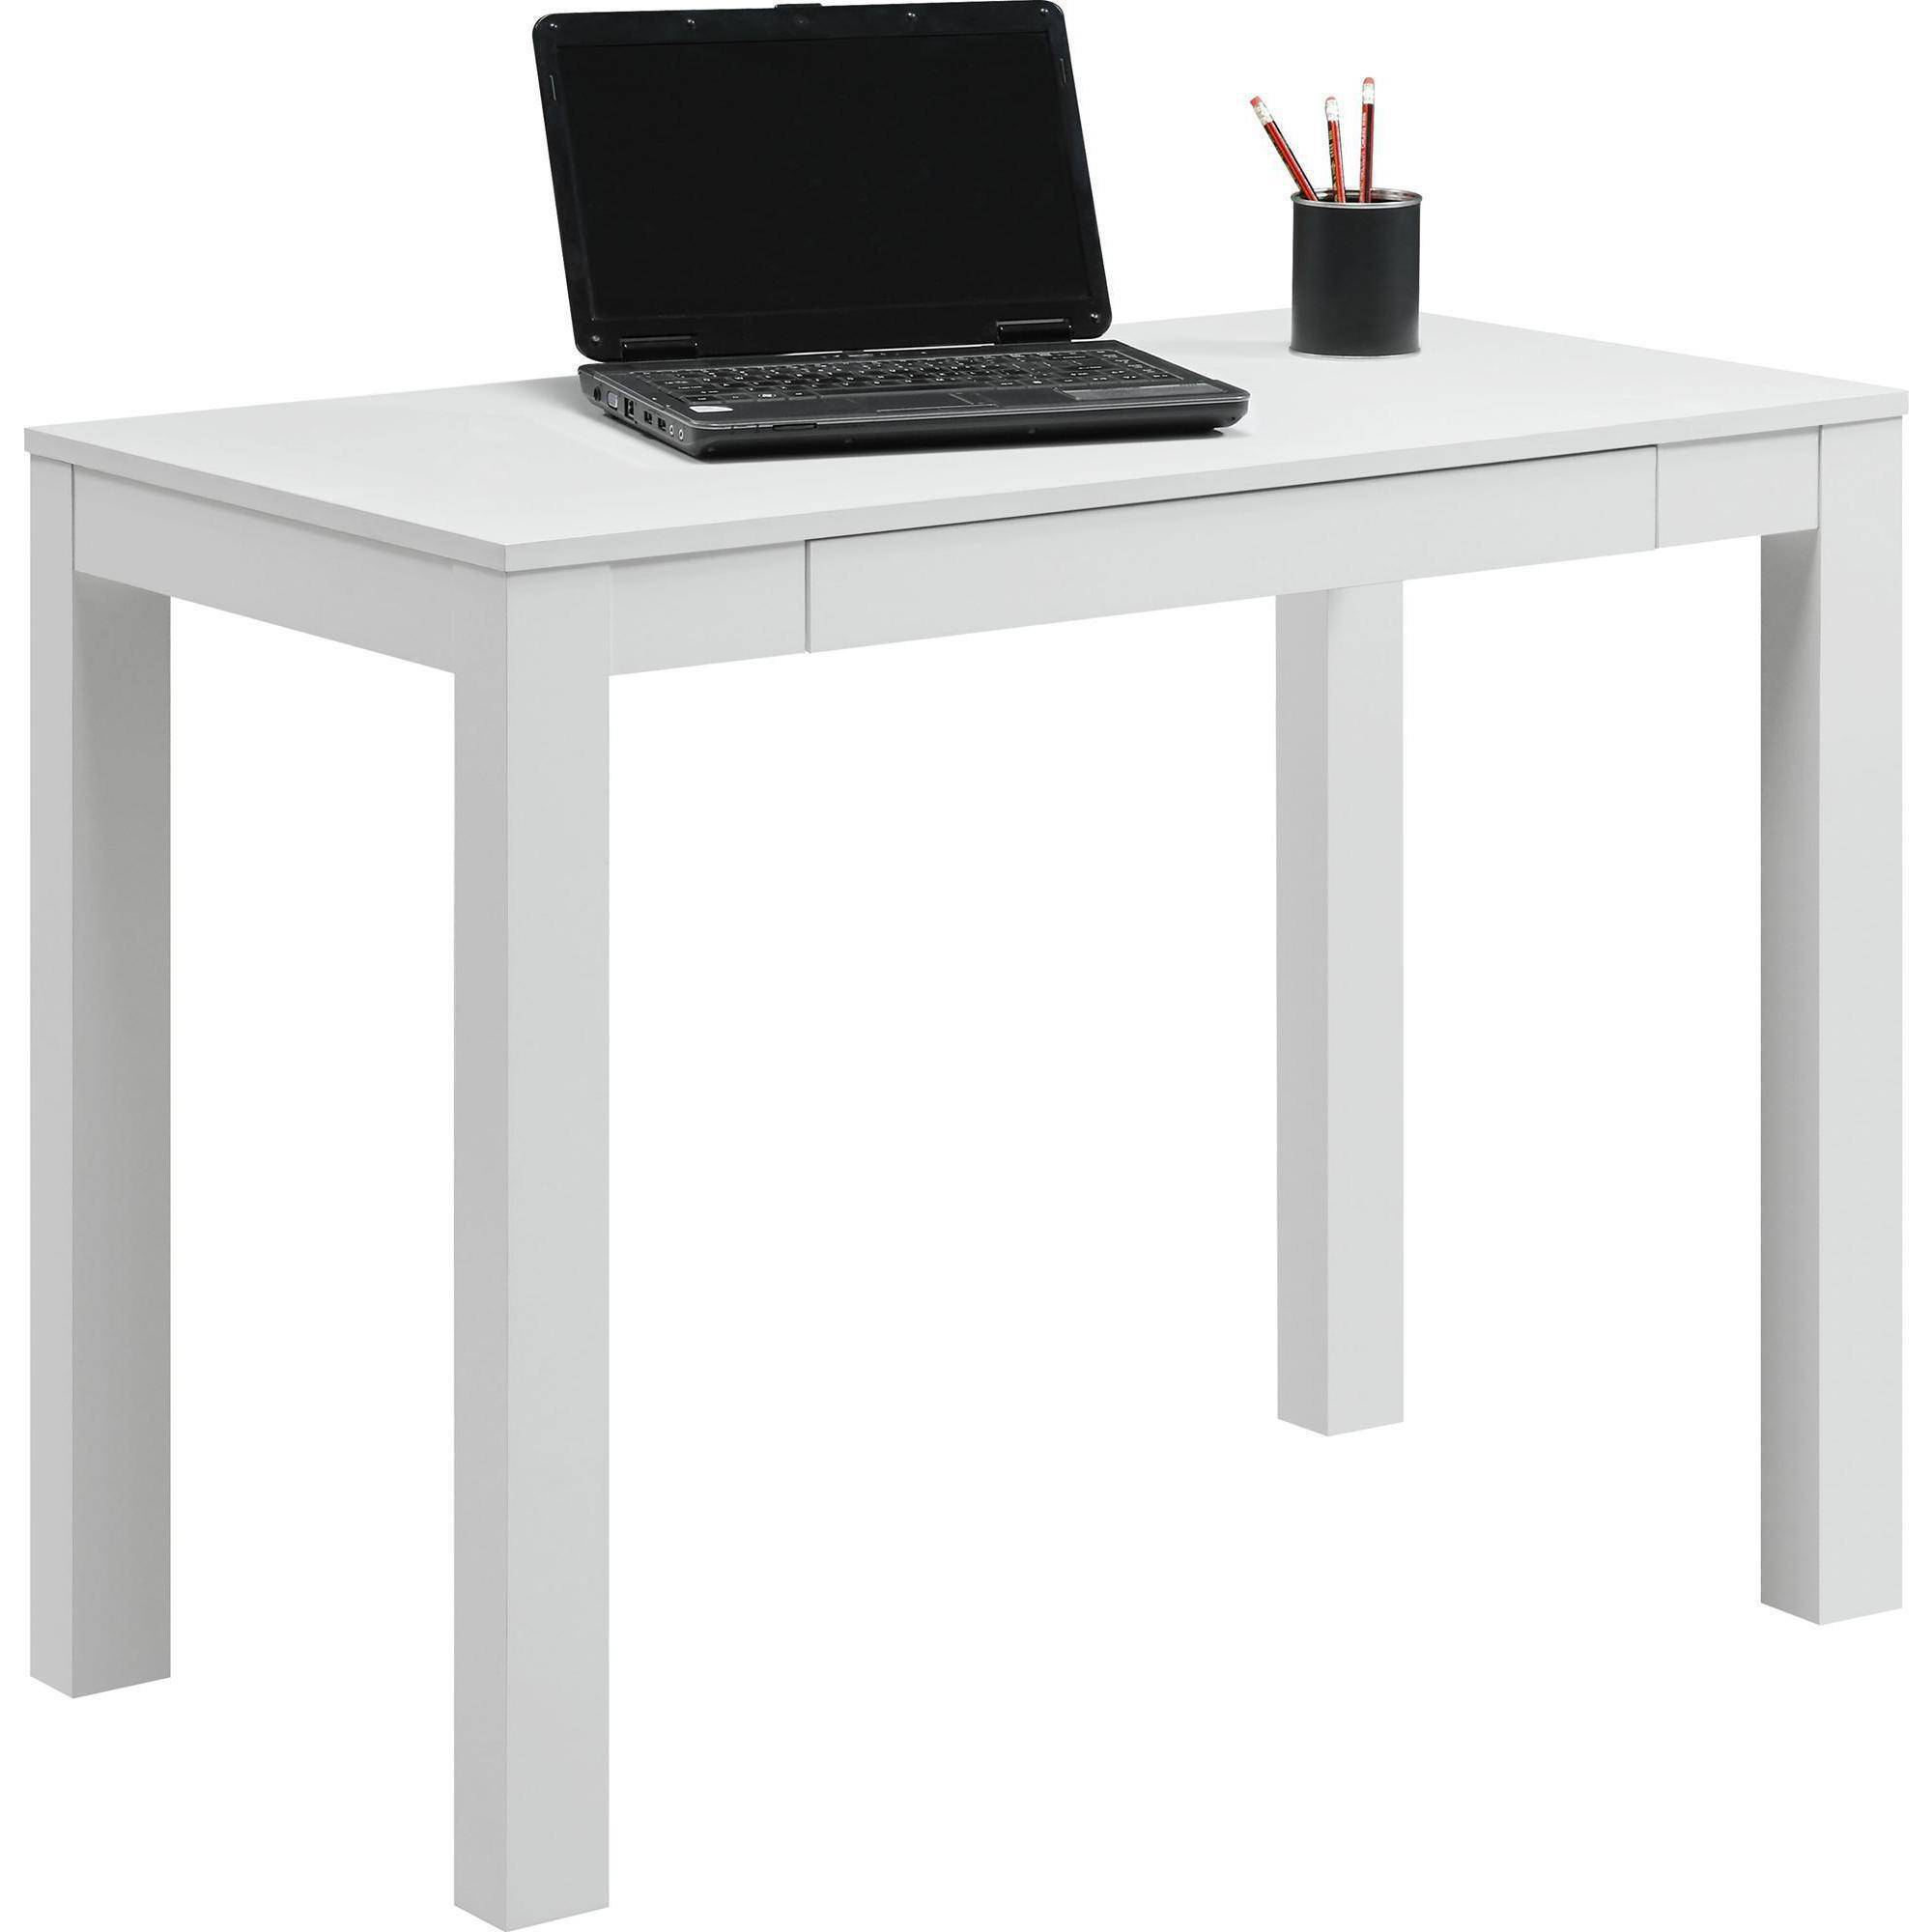 office desk walmart. Office Desk Walmart F